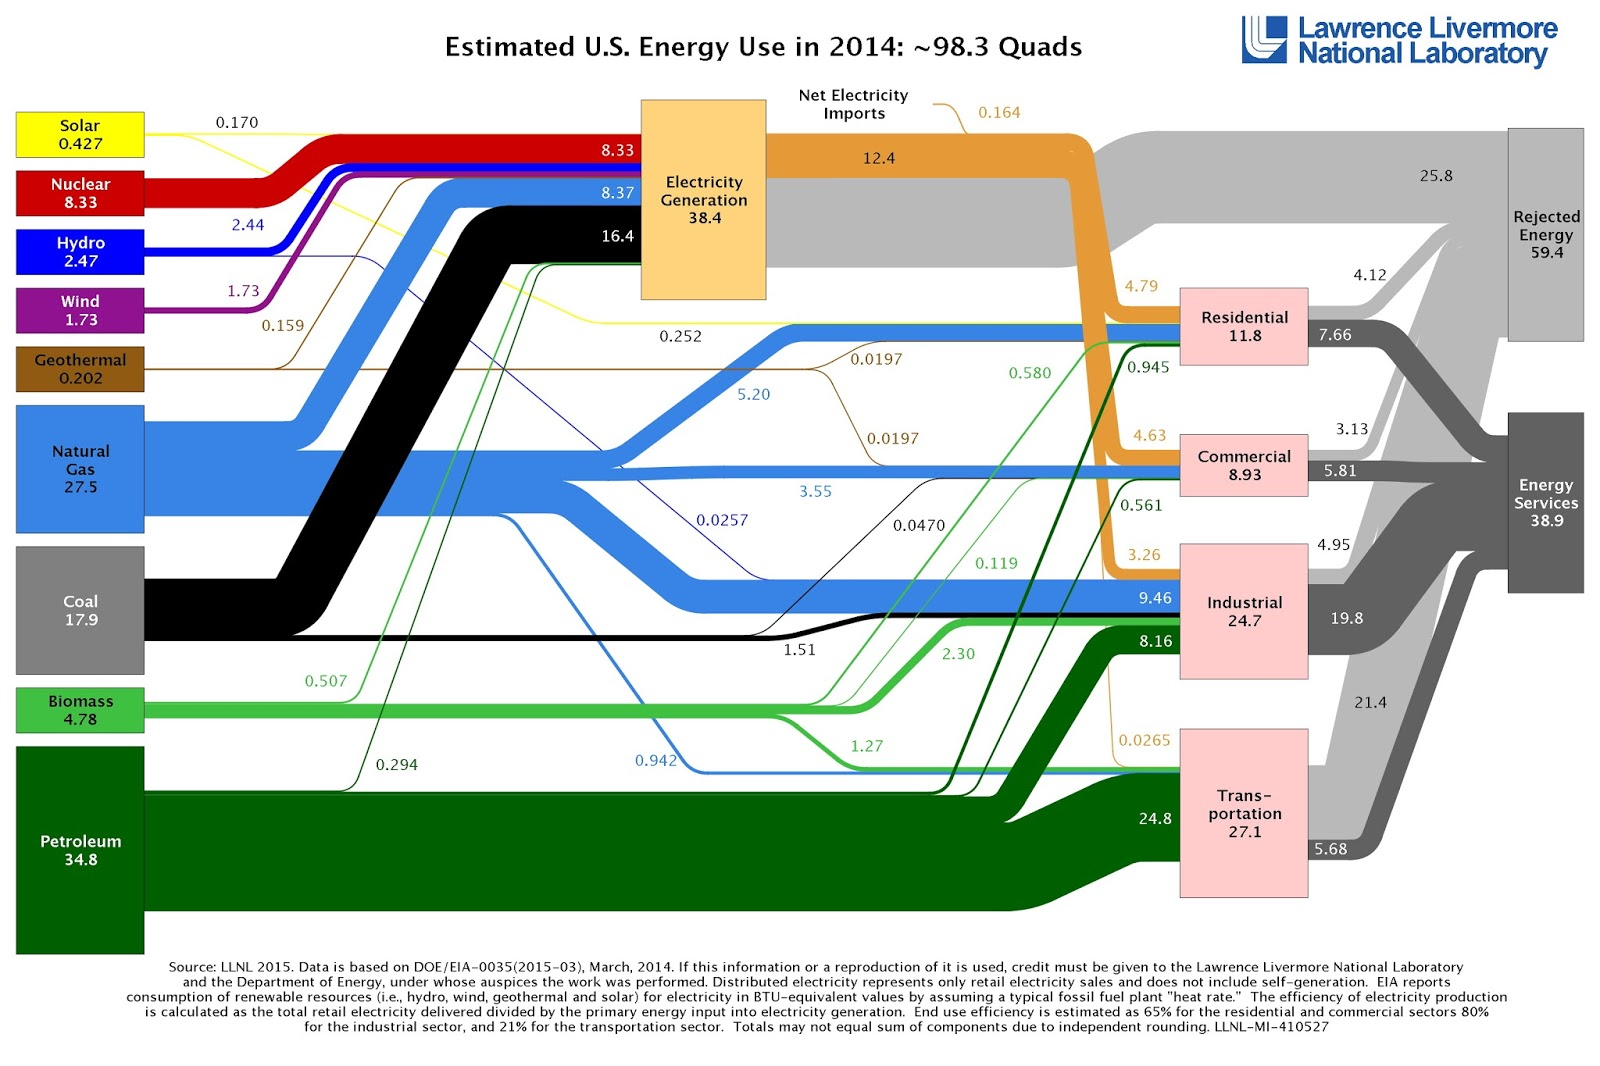 Estimated US energy use